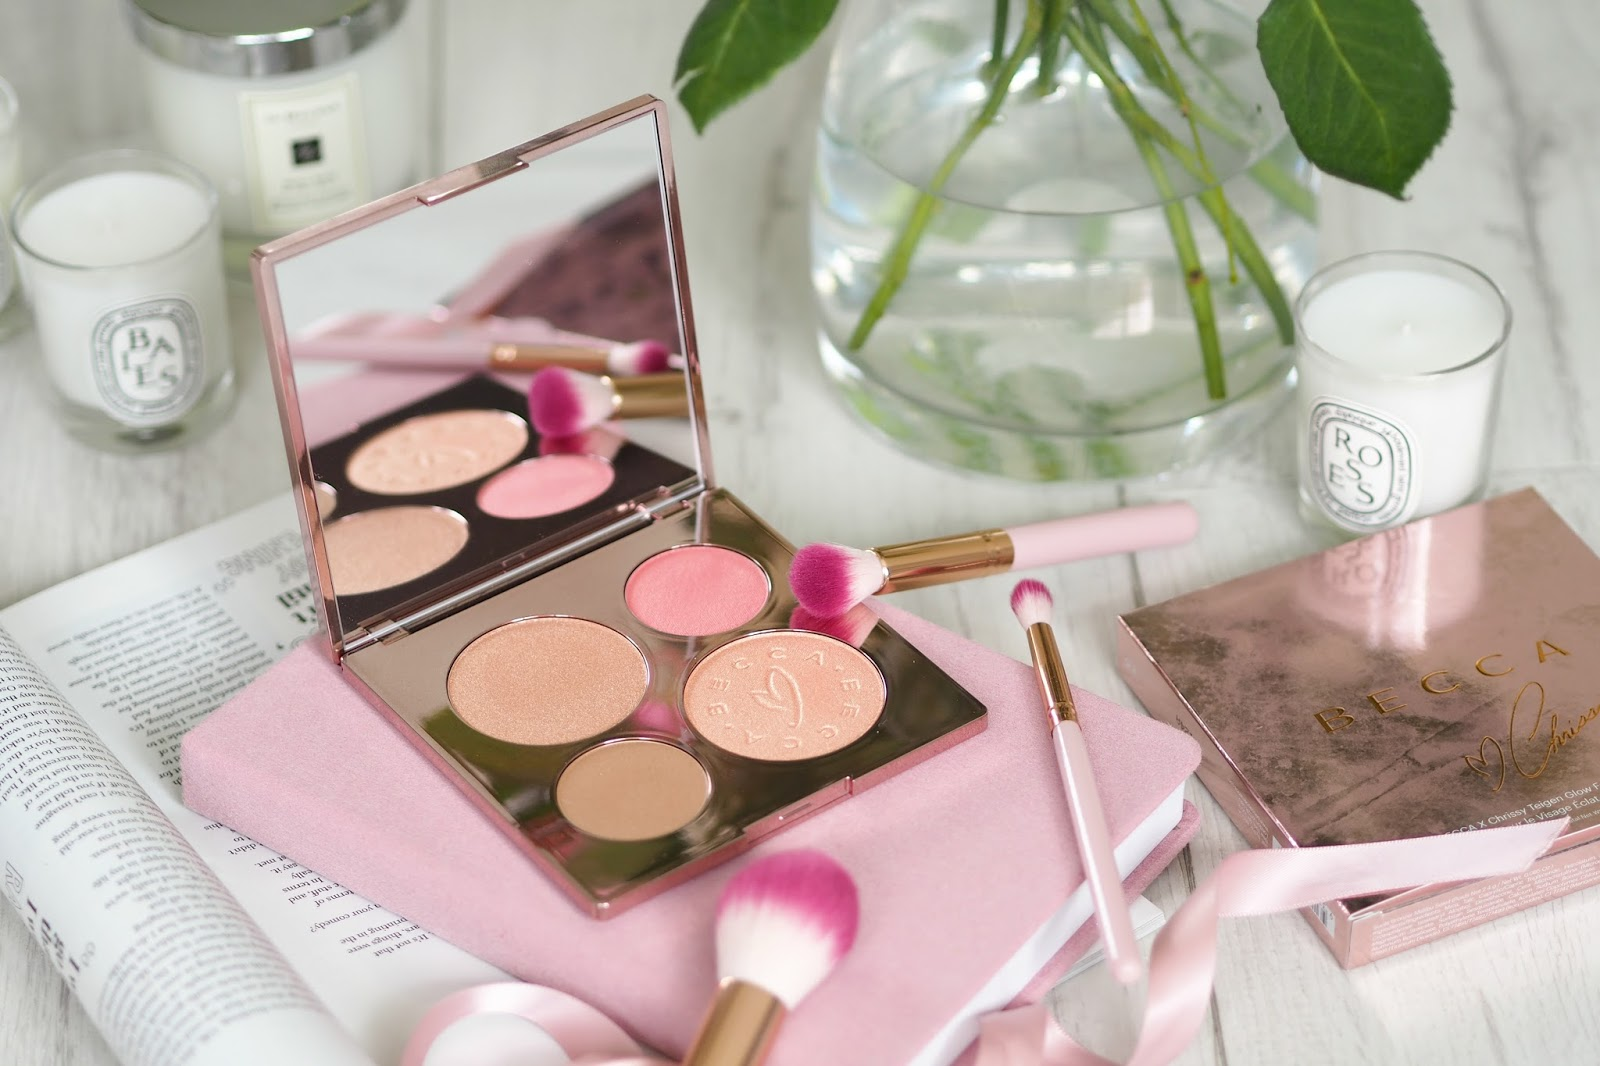 BECCA X Chrissy Teigen Glow Face Palette review UK